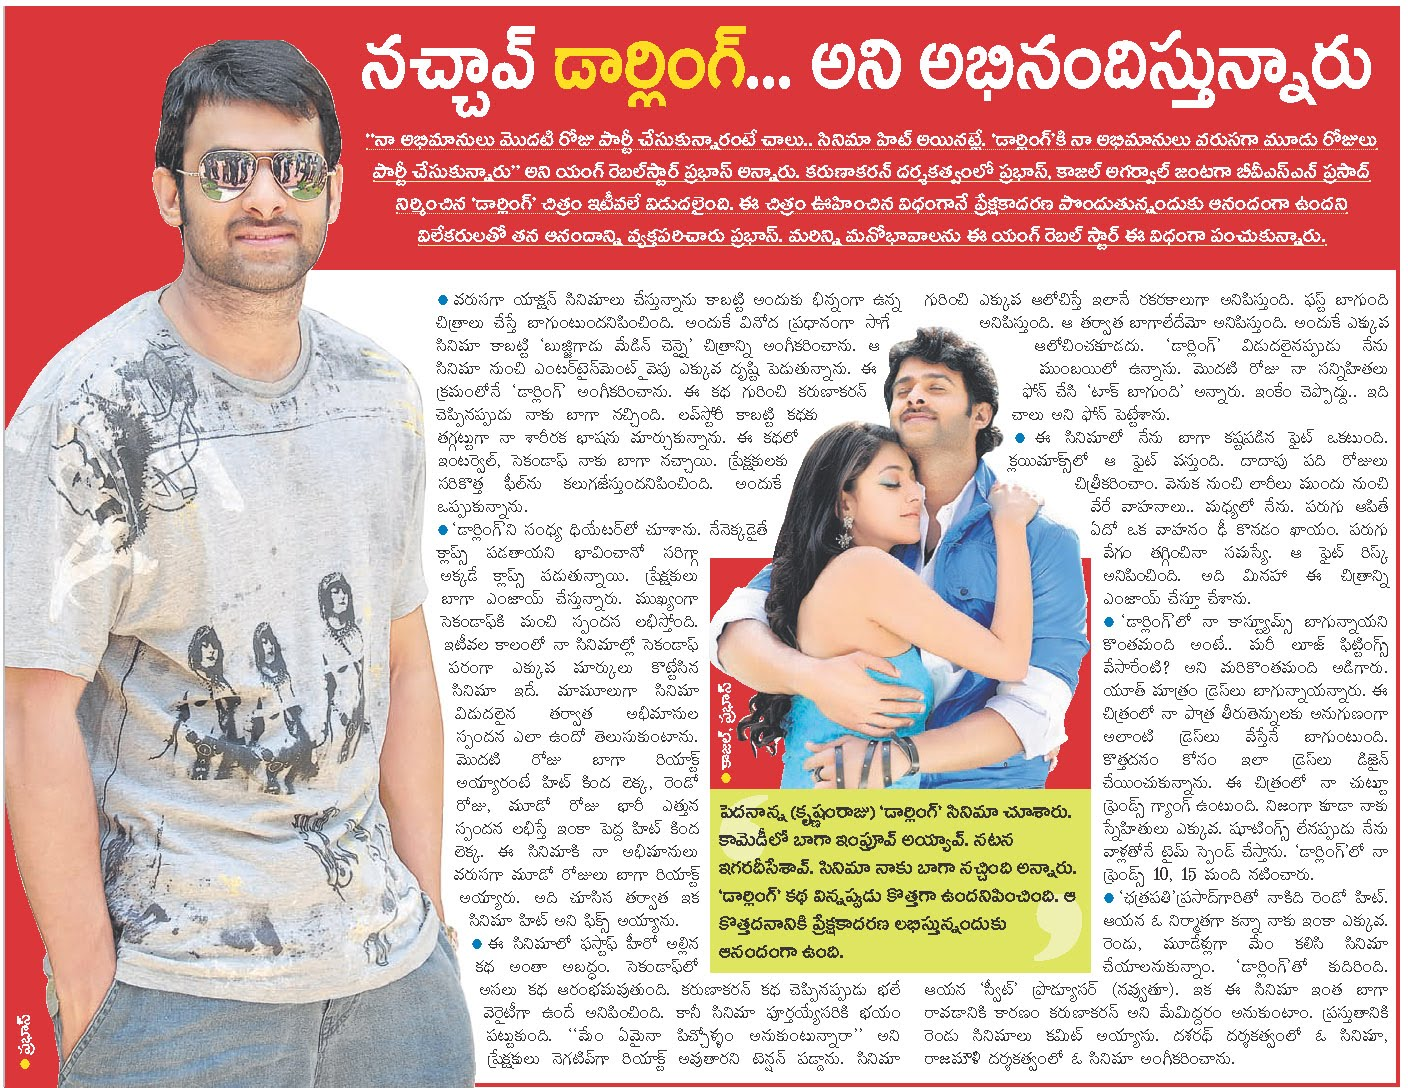 Prabhas-interview-about-darling.JPG